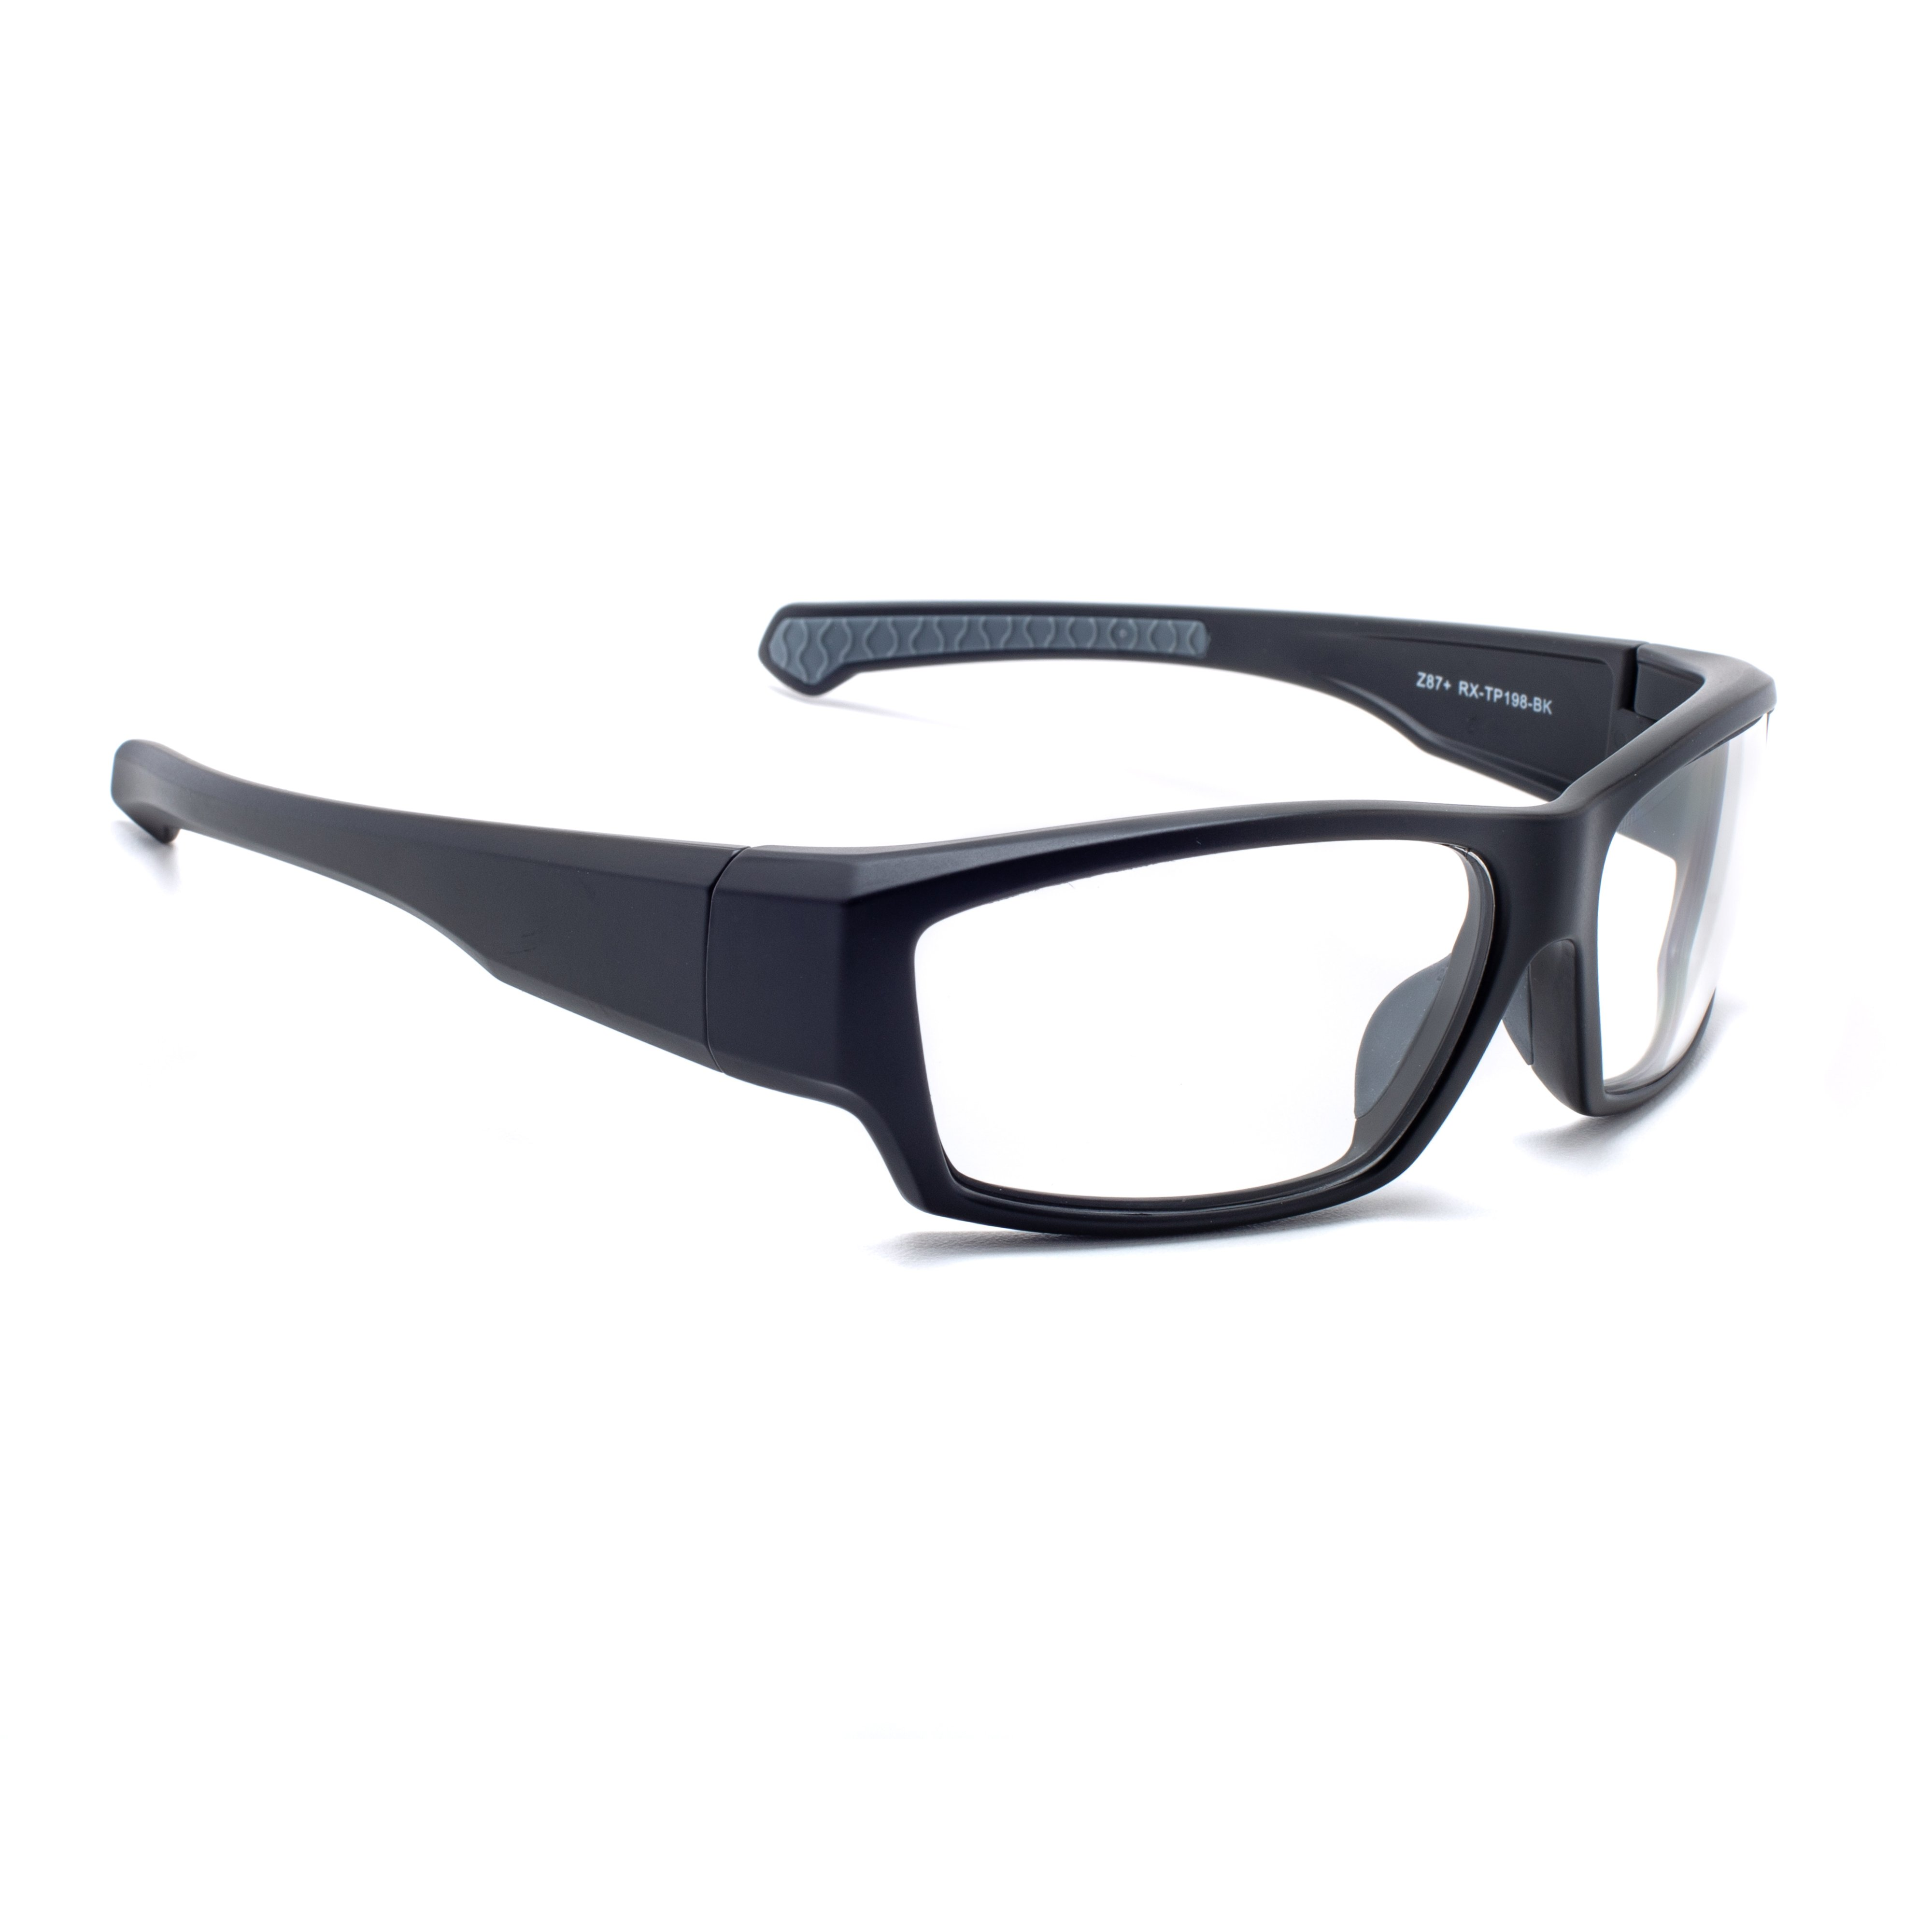 5941c405ecd Prescription Safety Glasses RX-TP198 - Rx Prescription Safety Glasses